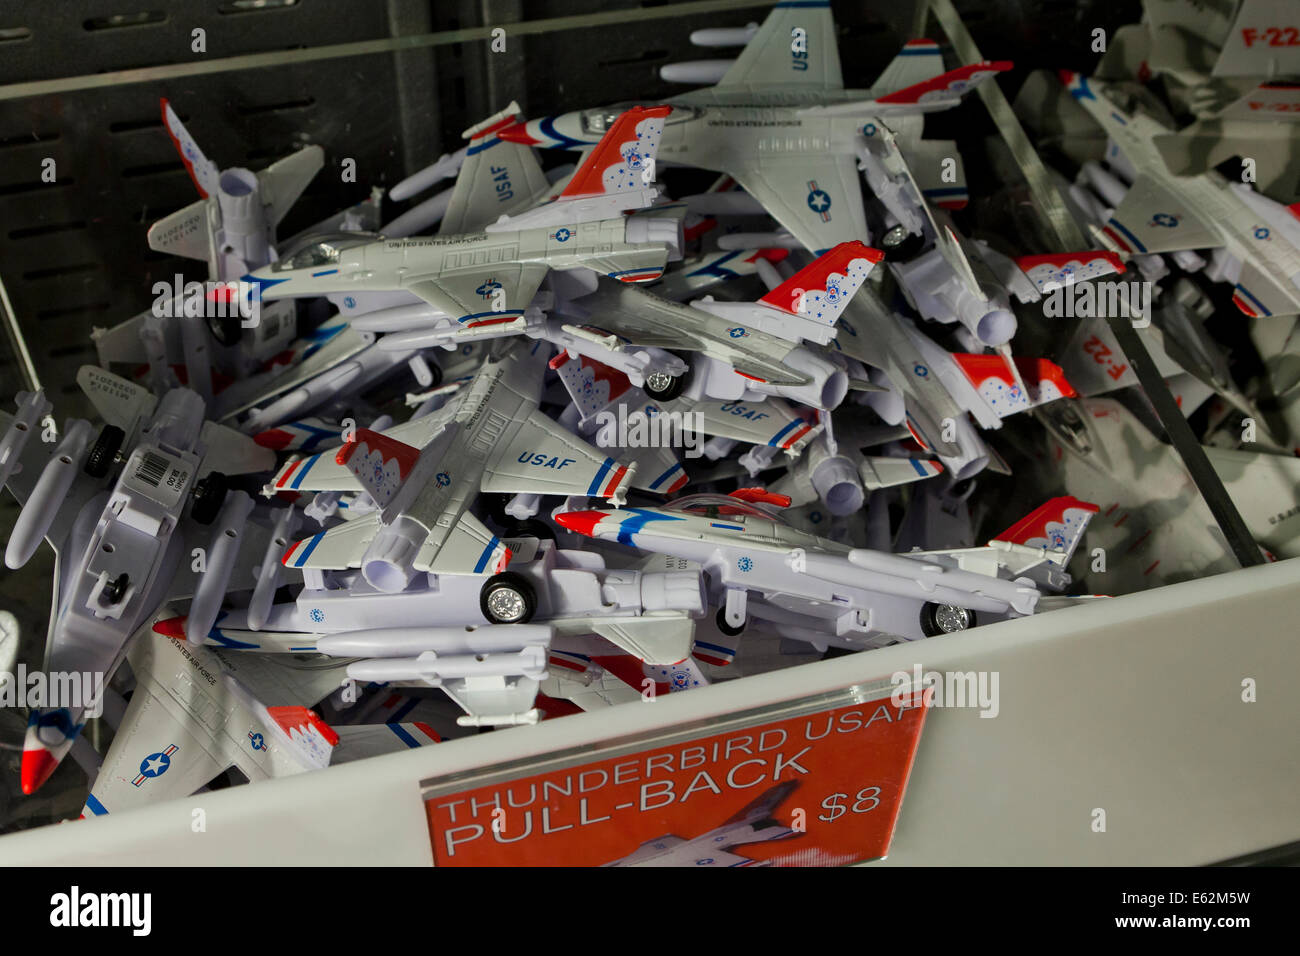 Toy model jets at toy store - USA - Stock Image